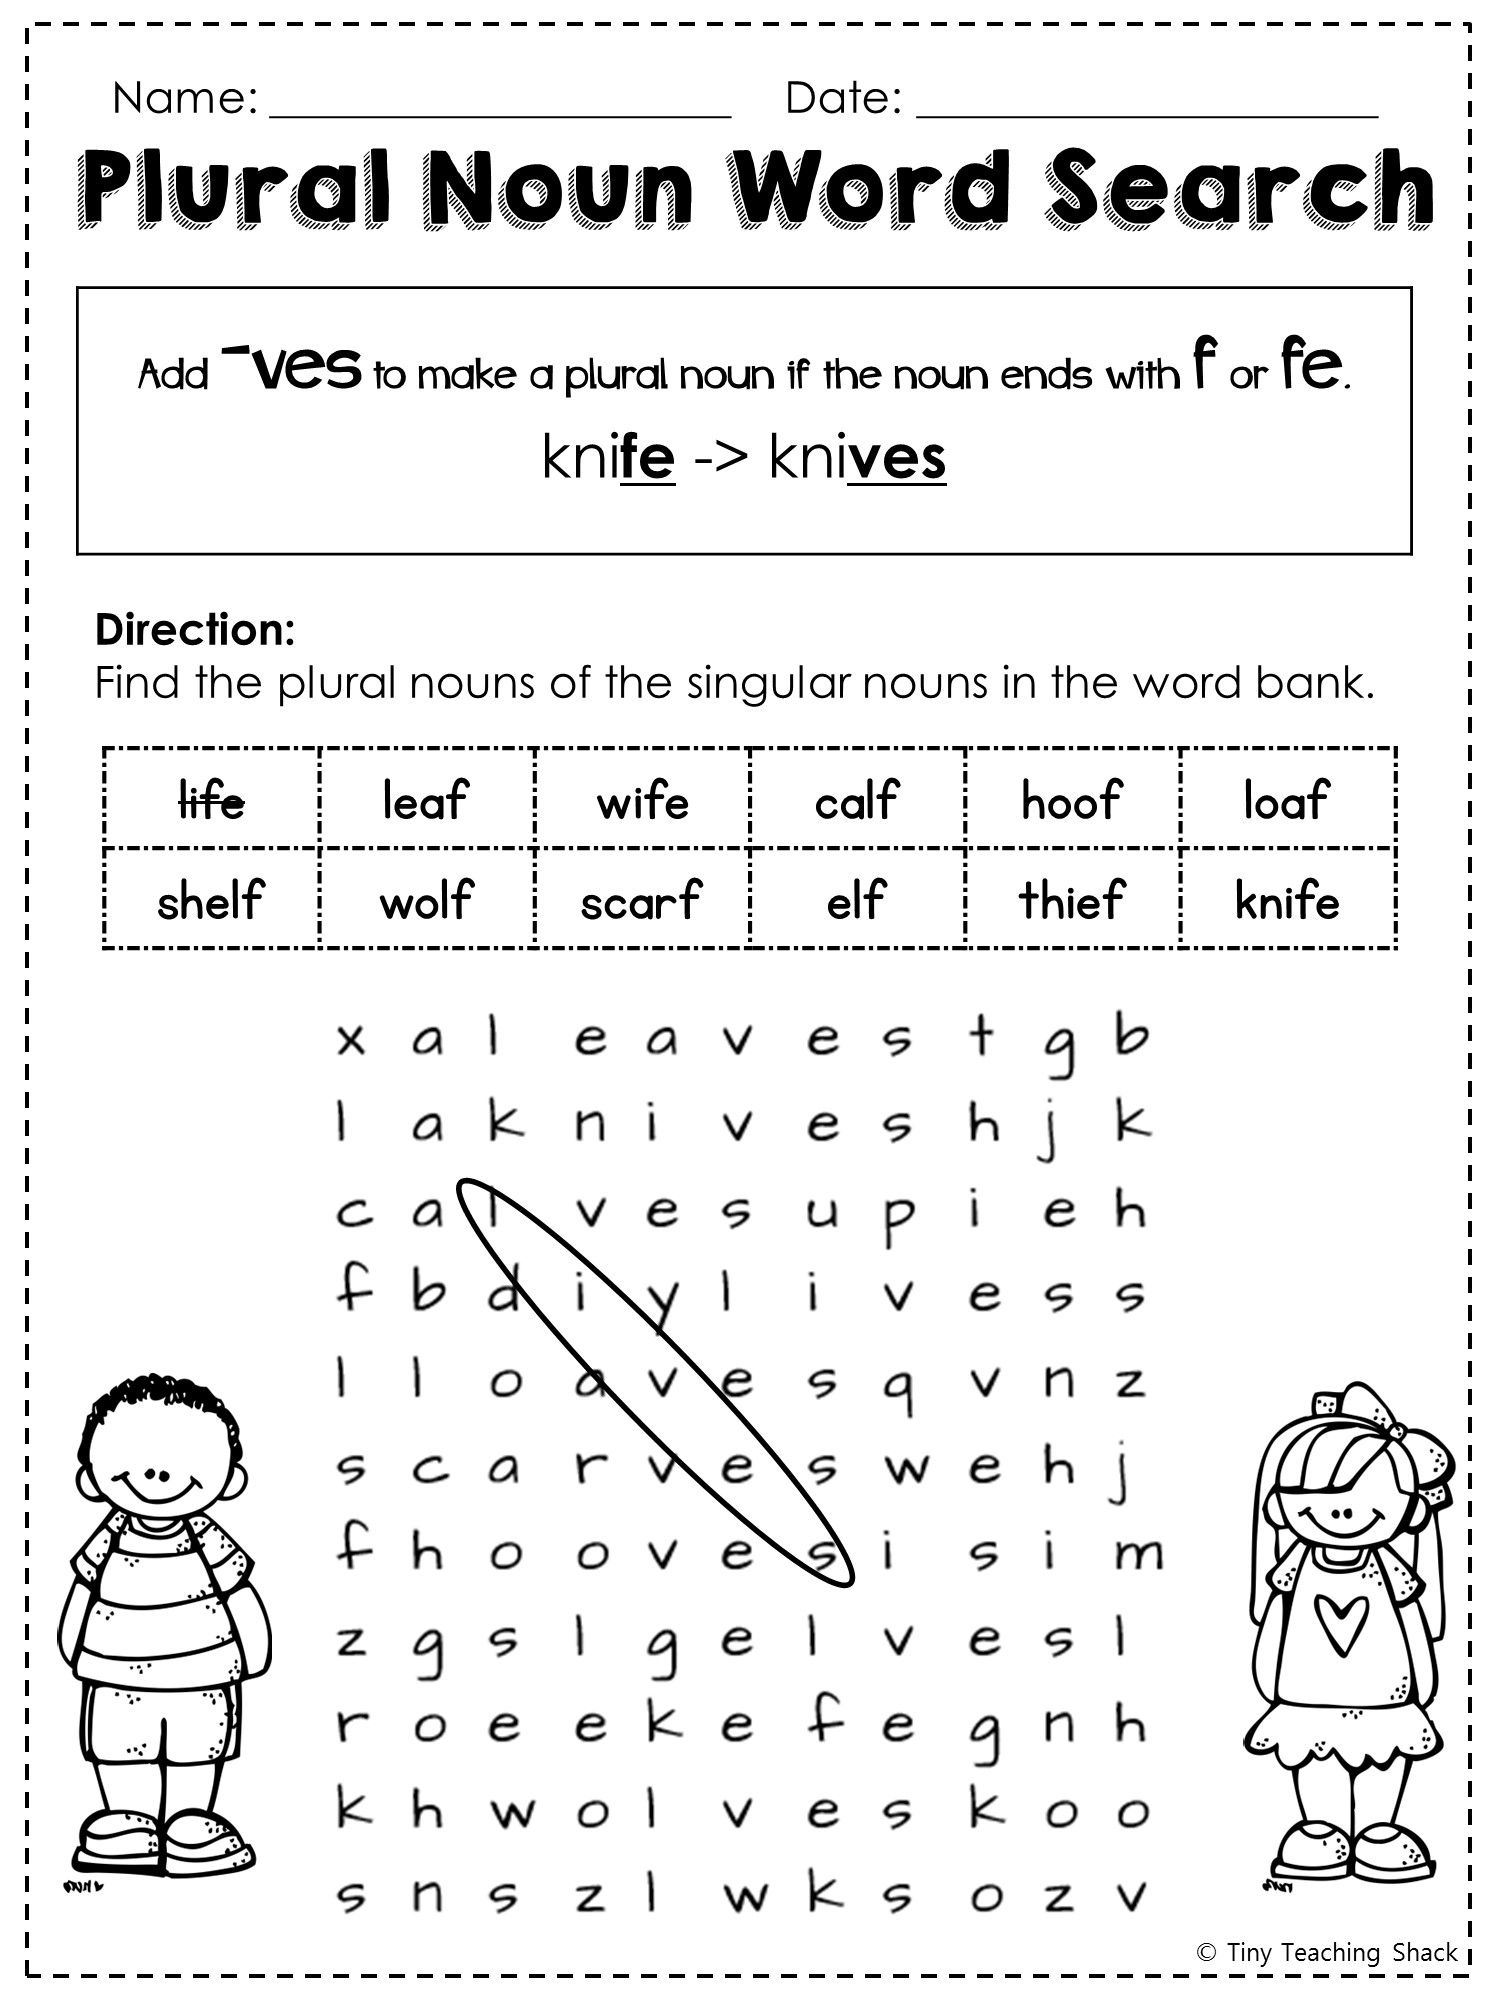 FREE irregular plural noun word search | TpT FREE LESSONS ...